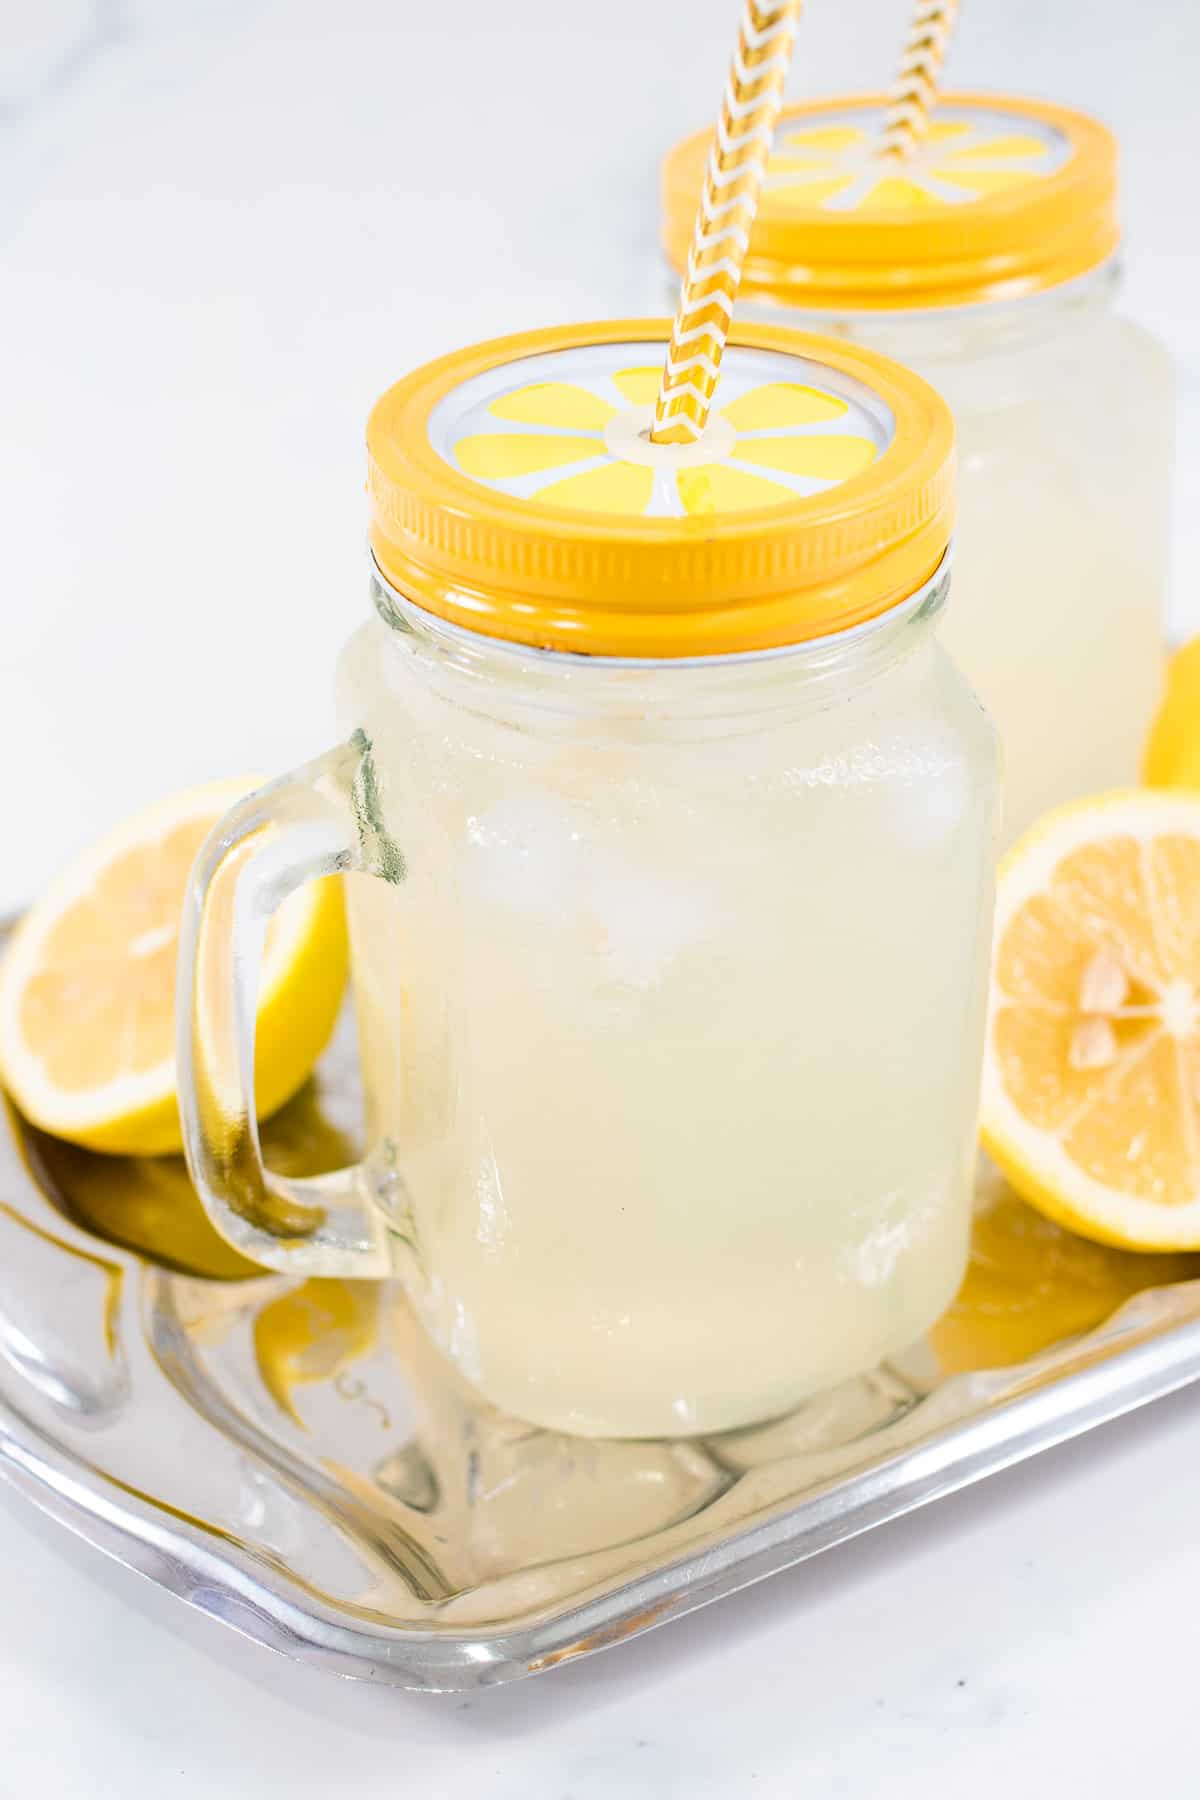 A glass of lemonade with yellow lid and straw